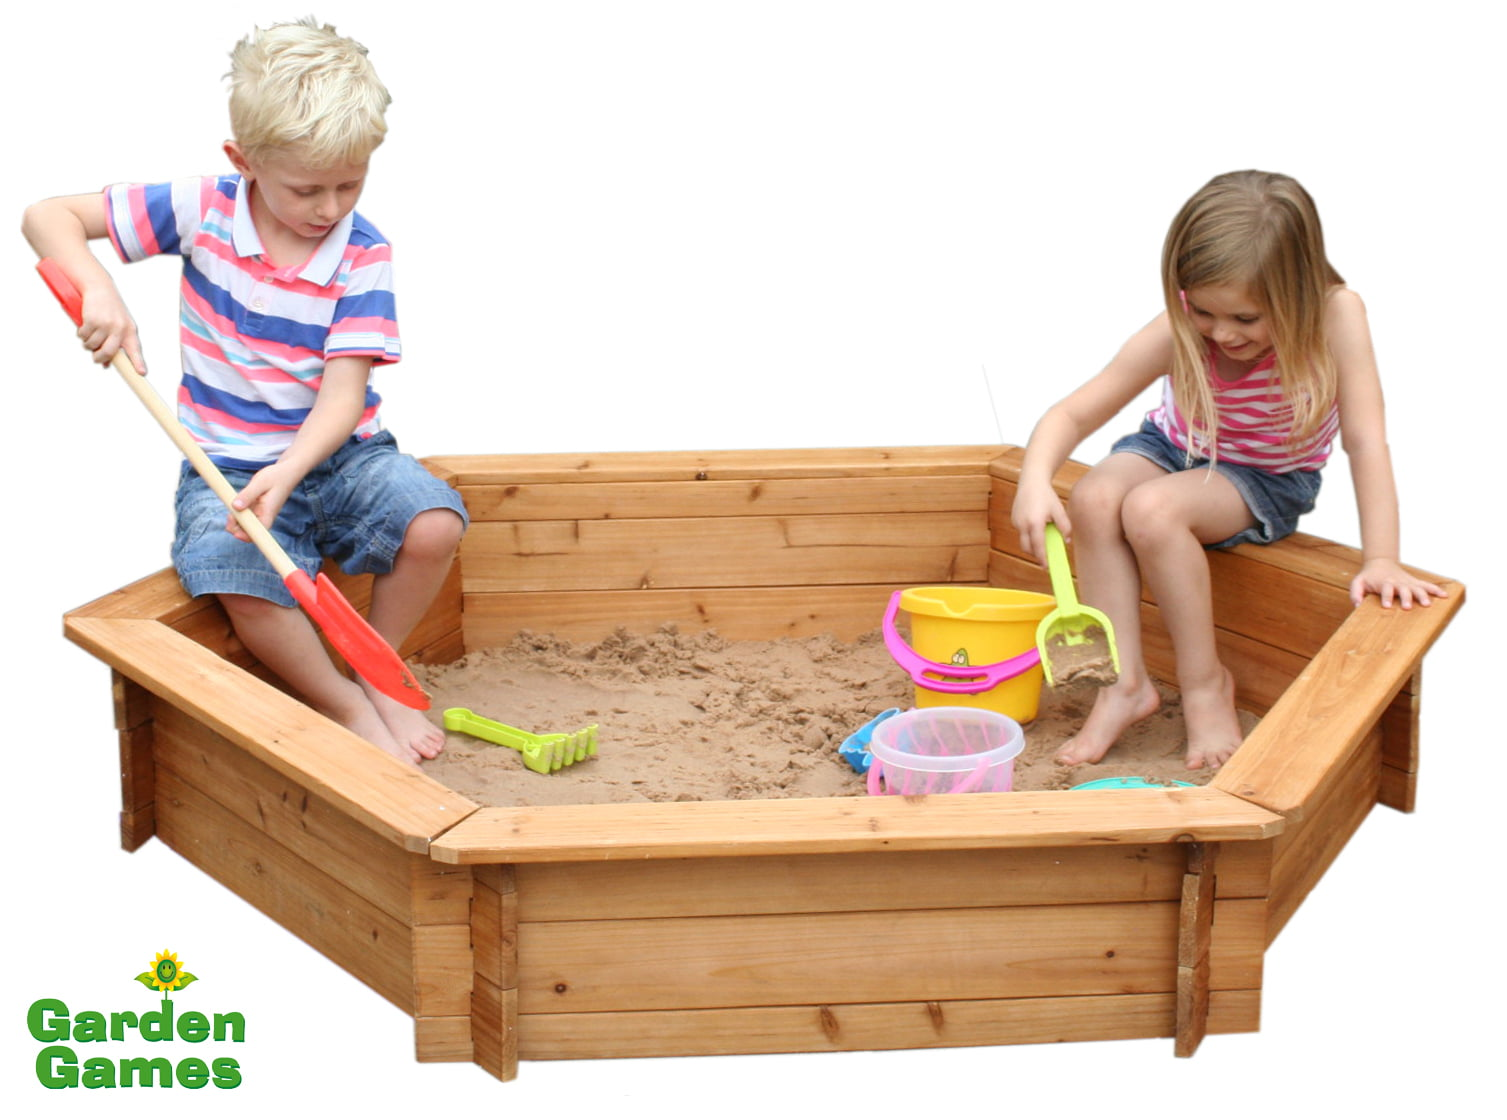 Adventure Zone Toys Garden Games Hexagonal Sandbox